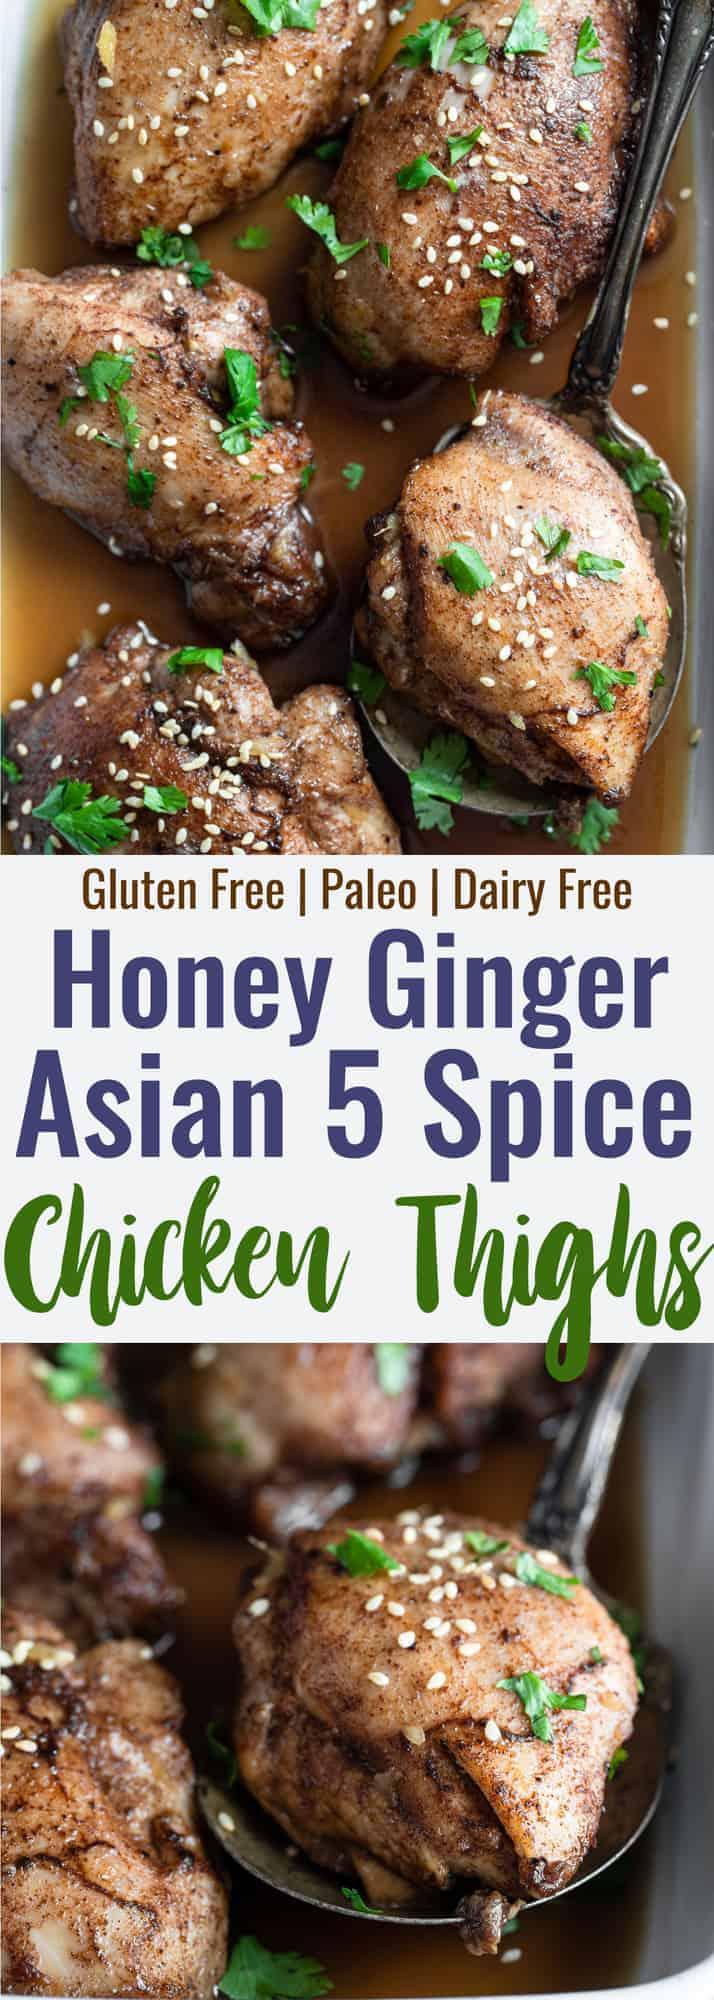 2 images of chinese 5 spice chicken